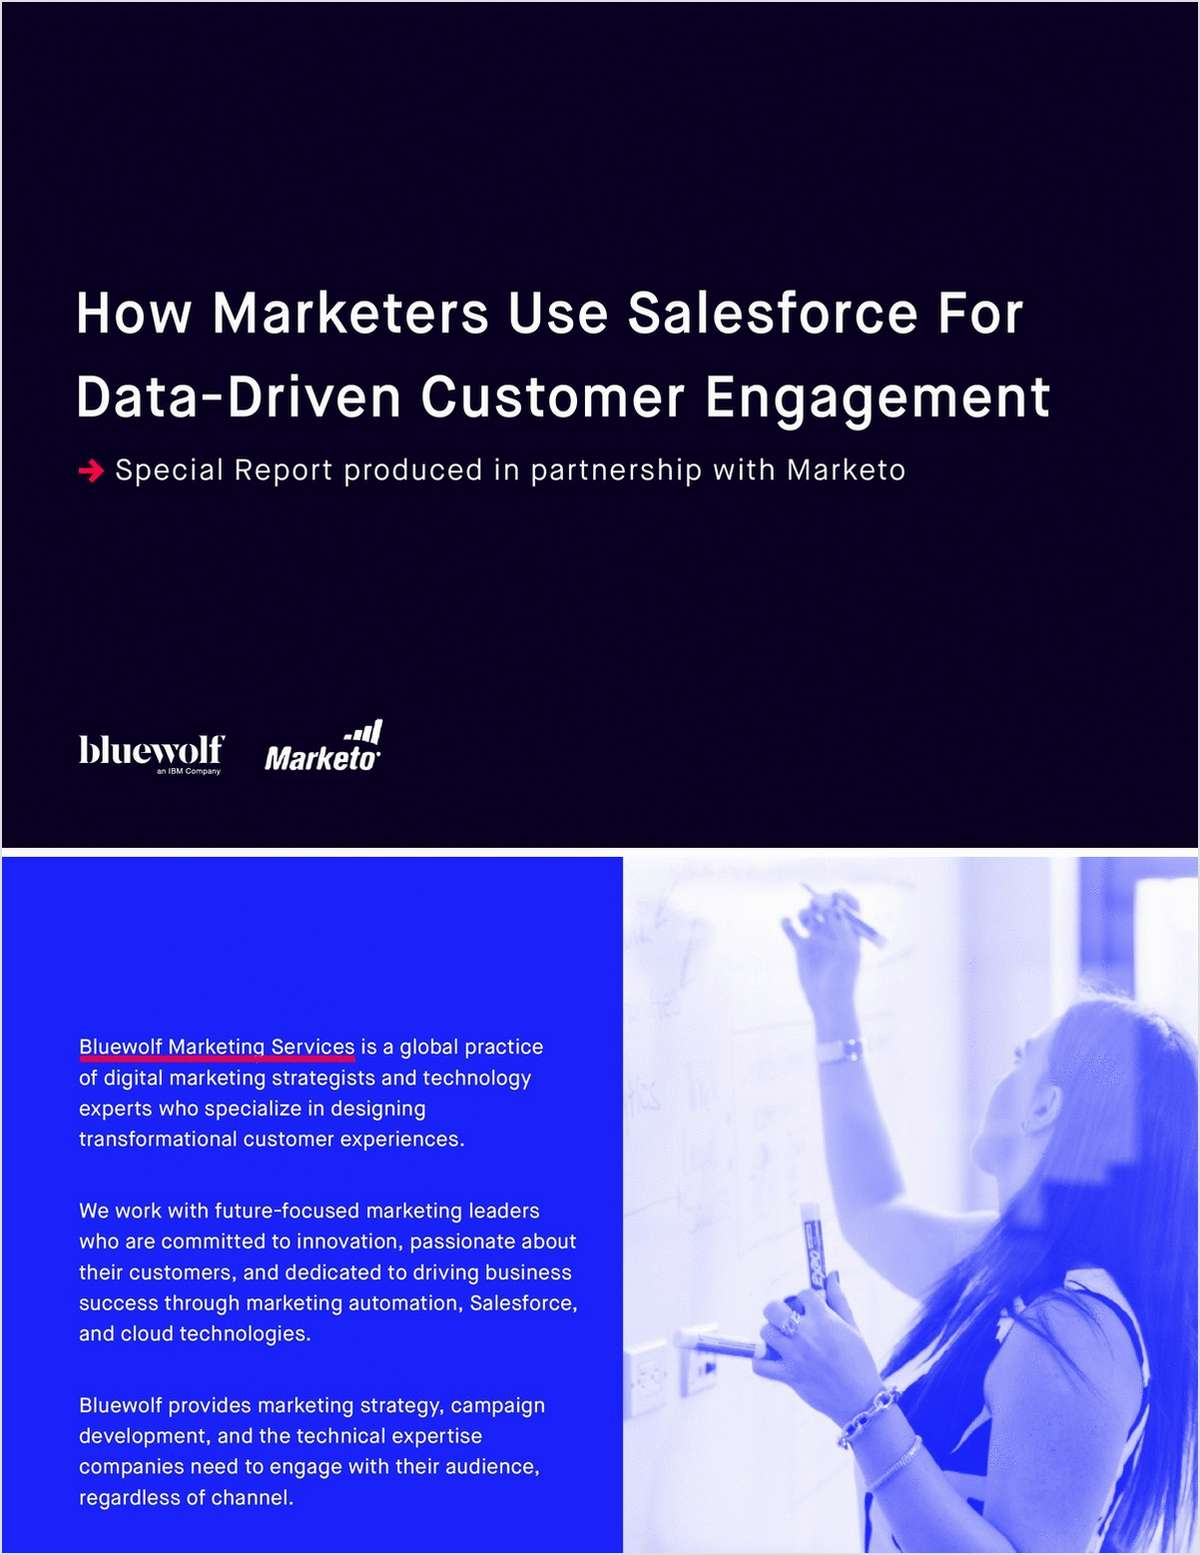 How Marketers Use Salesforce For Data-Driven Customer Engagement